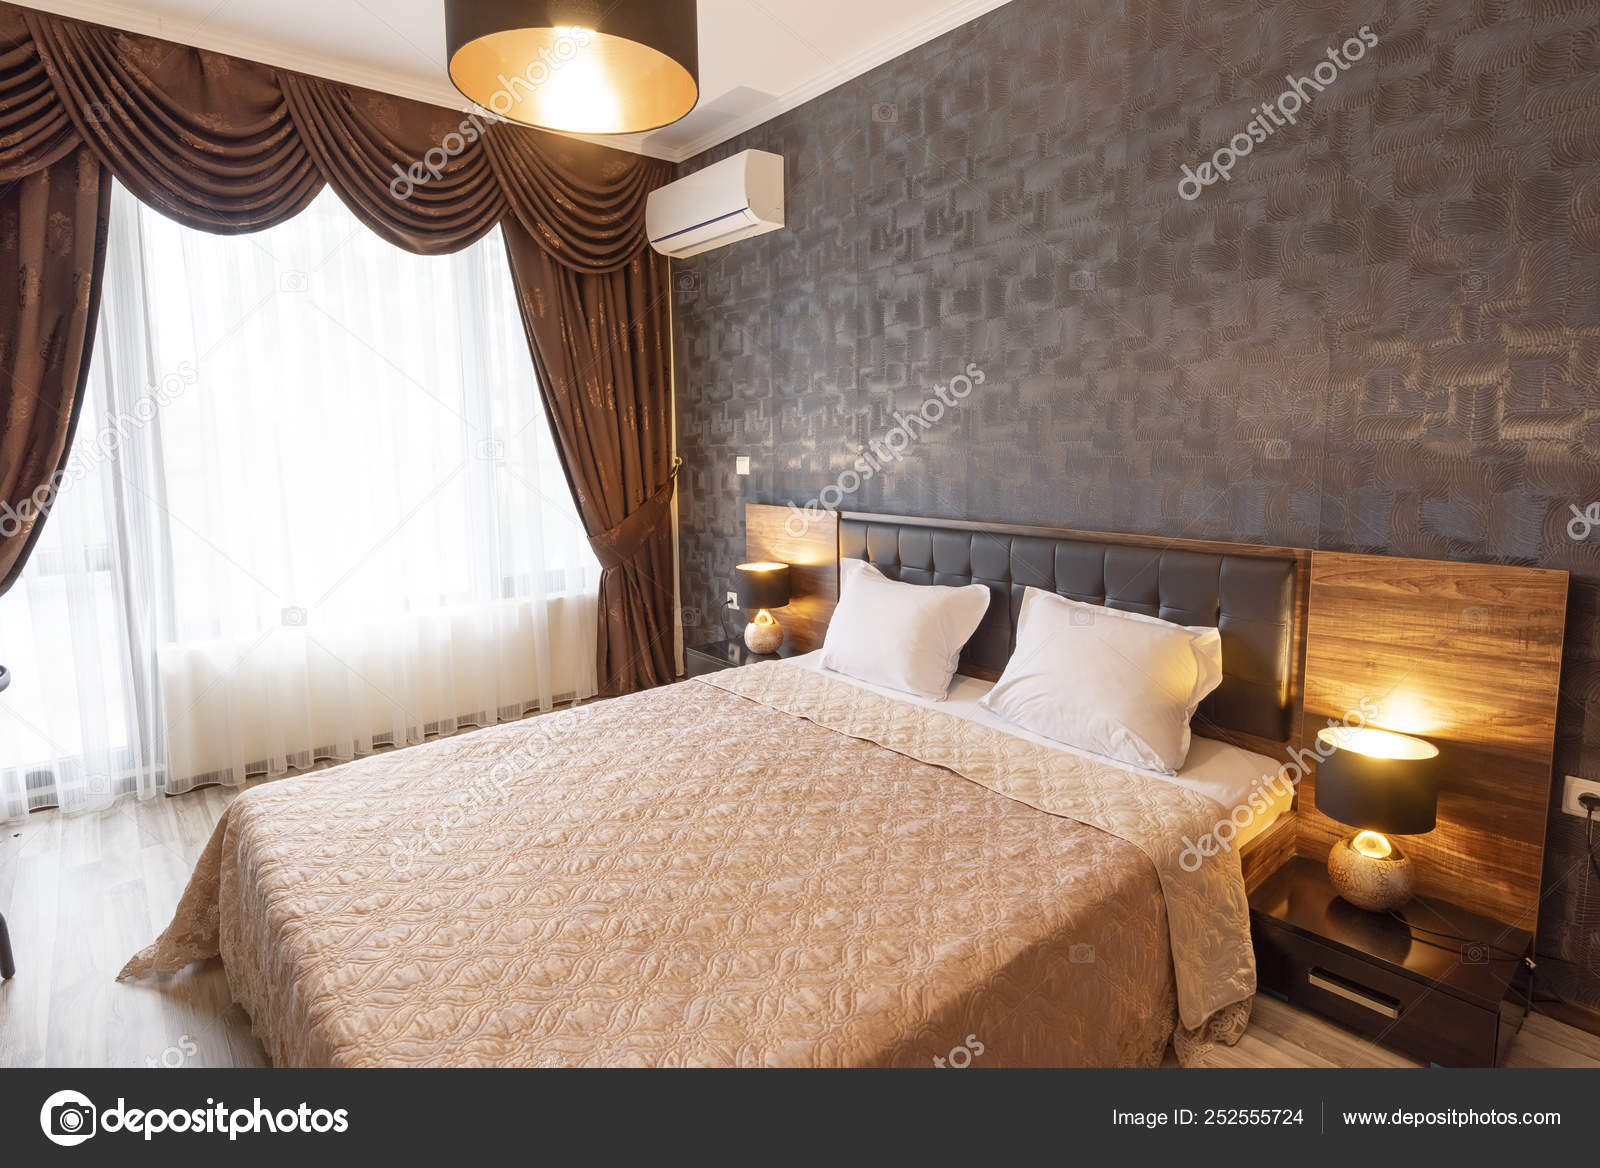 Classy Bedroom Interior Design Large Bed Room With Brown Color Tone Furniture Windows With Long Curtains Drapery And Sheers Interior Photography Stock Photo C Snj Abv Bg 252555724